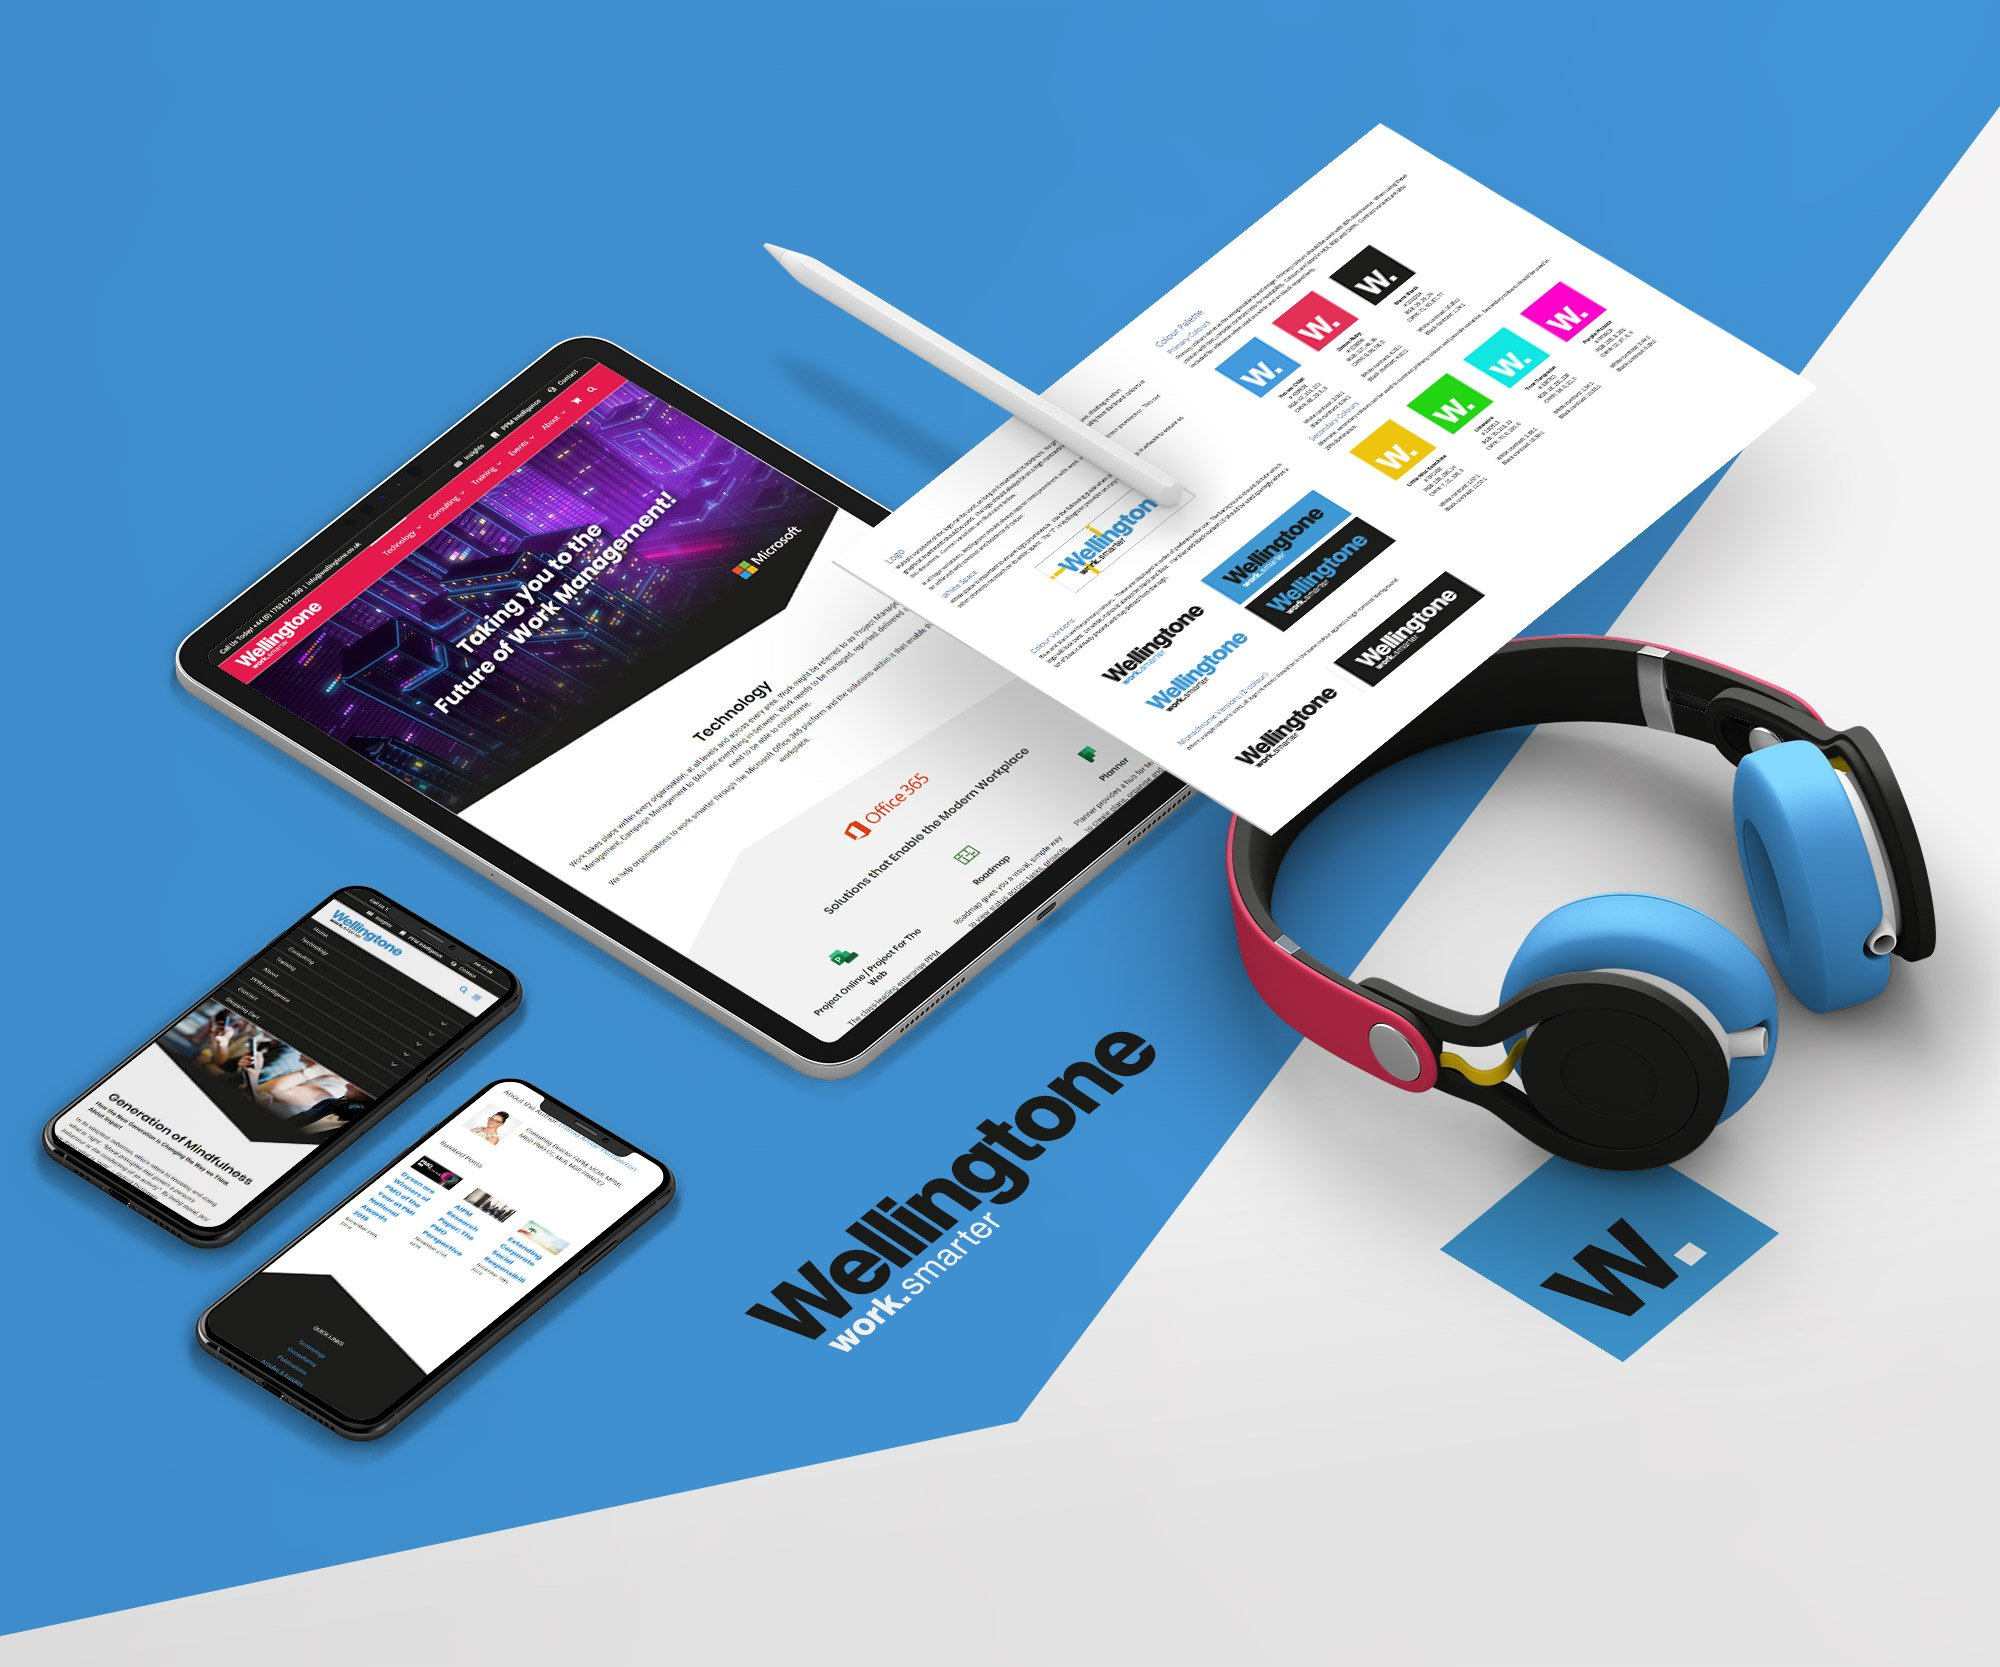 Wellingtone website - tablet, mobile devices and headphones